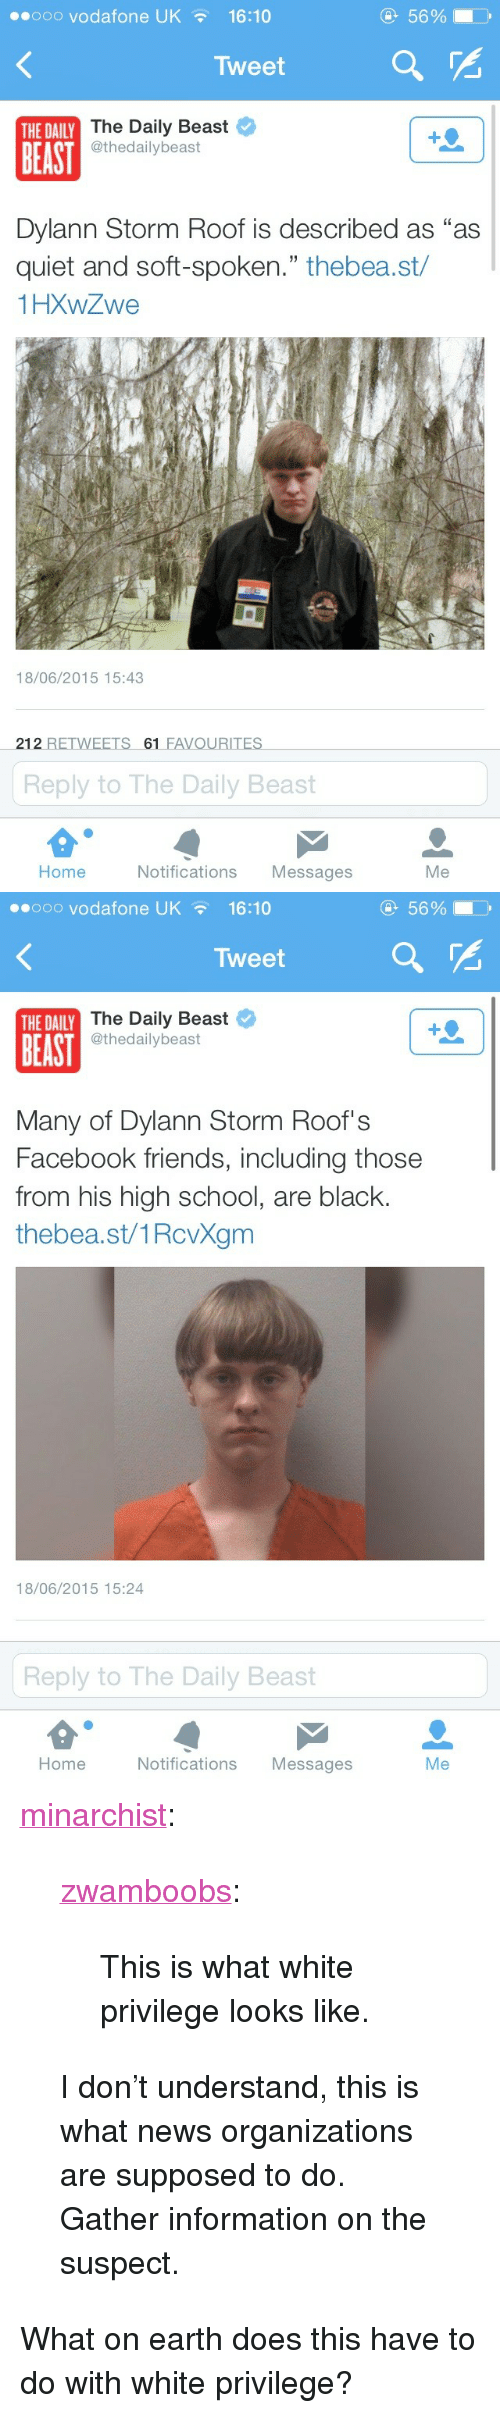 """Facebook, Friends, and News: eooo vodafone UK16:10  5690  Tweet  The Daily Beast  @thedailybeast  THE DAILY  BEAST  Dylann Storm Roof is described as """"as  quiet and soft-spoken."""" thebea.st/  1HXWZwe  18/06/2015 15:43  212 RETWEETS 61 FAVOURITES  Reply to The Daily Beast  Home  Notifications Messages  Me   ..ooo vodafone UK  16:10  5690  Tweet  The Daily Beast  @thedailybeast  THE DAILY  BEAST  Many of Dylann Storm Roof's  Facebook friends, including those  from his high school, are black.  thebea.st/1RcvXgm  18/06/2015 15:24  Reply to The Daily Beast  Home  Notifications Messages  Me <p><a class=""""tumblr_blog"""" href=""""http://minarchist.tumblr.com/post/121847656894/zwamboobs-this-is-what-white-privilege-looks"""">minarchist</a>:</p>  <blockquote><p><a class=""""tumblr_blog"""" href=""""http://zwamboobs.tumblr.com/post/121841004836/this-is-what-white-privilege-looks-like"""">zwamboobs</a>:</p>  <blockquote><p>This is what white privilege looks like.</p></blockquote>  <p>I don't understand, this is what news organizations are supposed to do. Gather information on the suspect.</p></blockquote>  <p>What on earth does this have to do with white privilege?<br/></p>"""